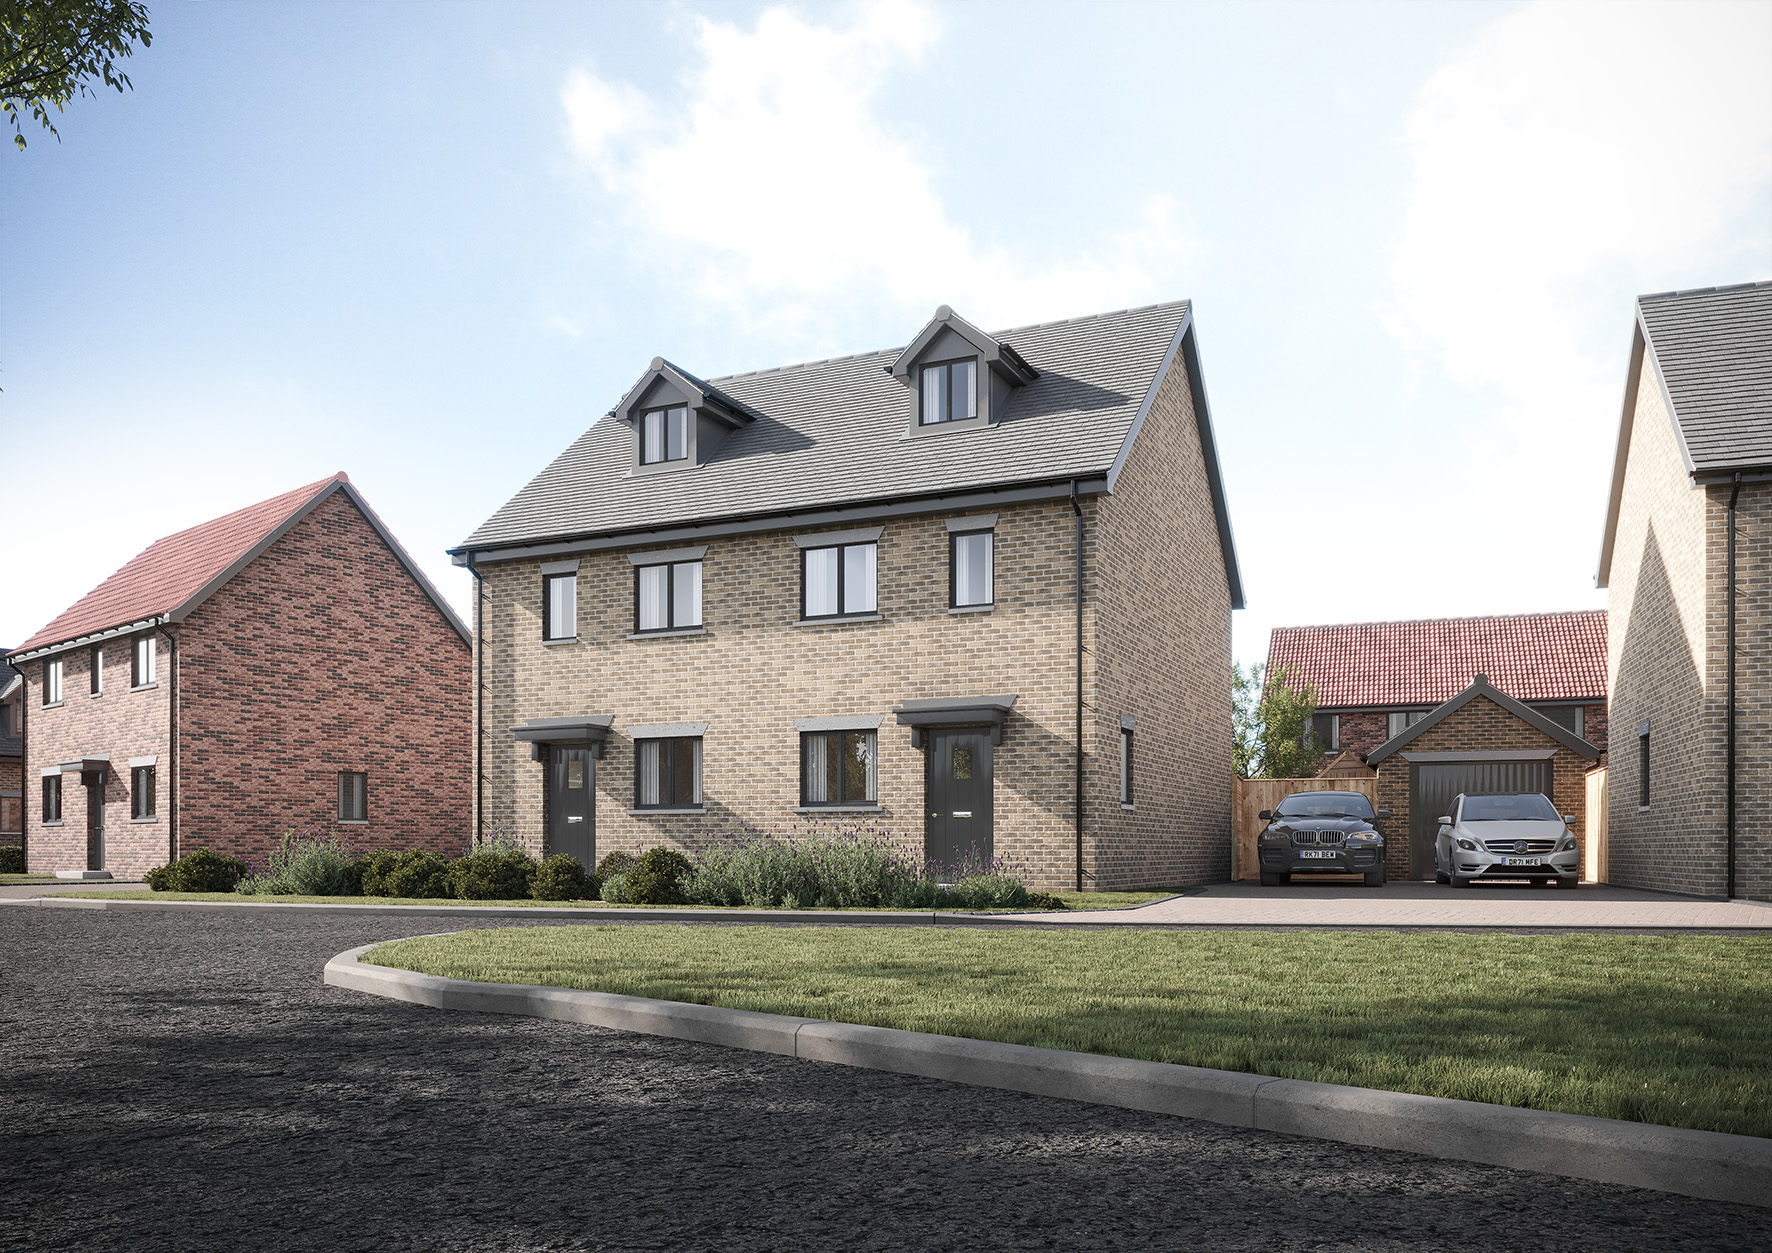 3 Moor Lane Maulden**Stunning new development – Help to buy available**